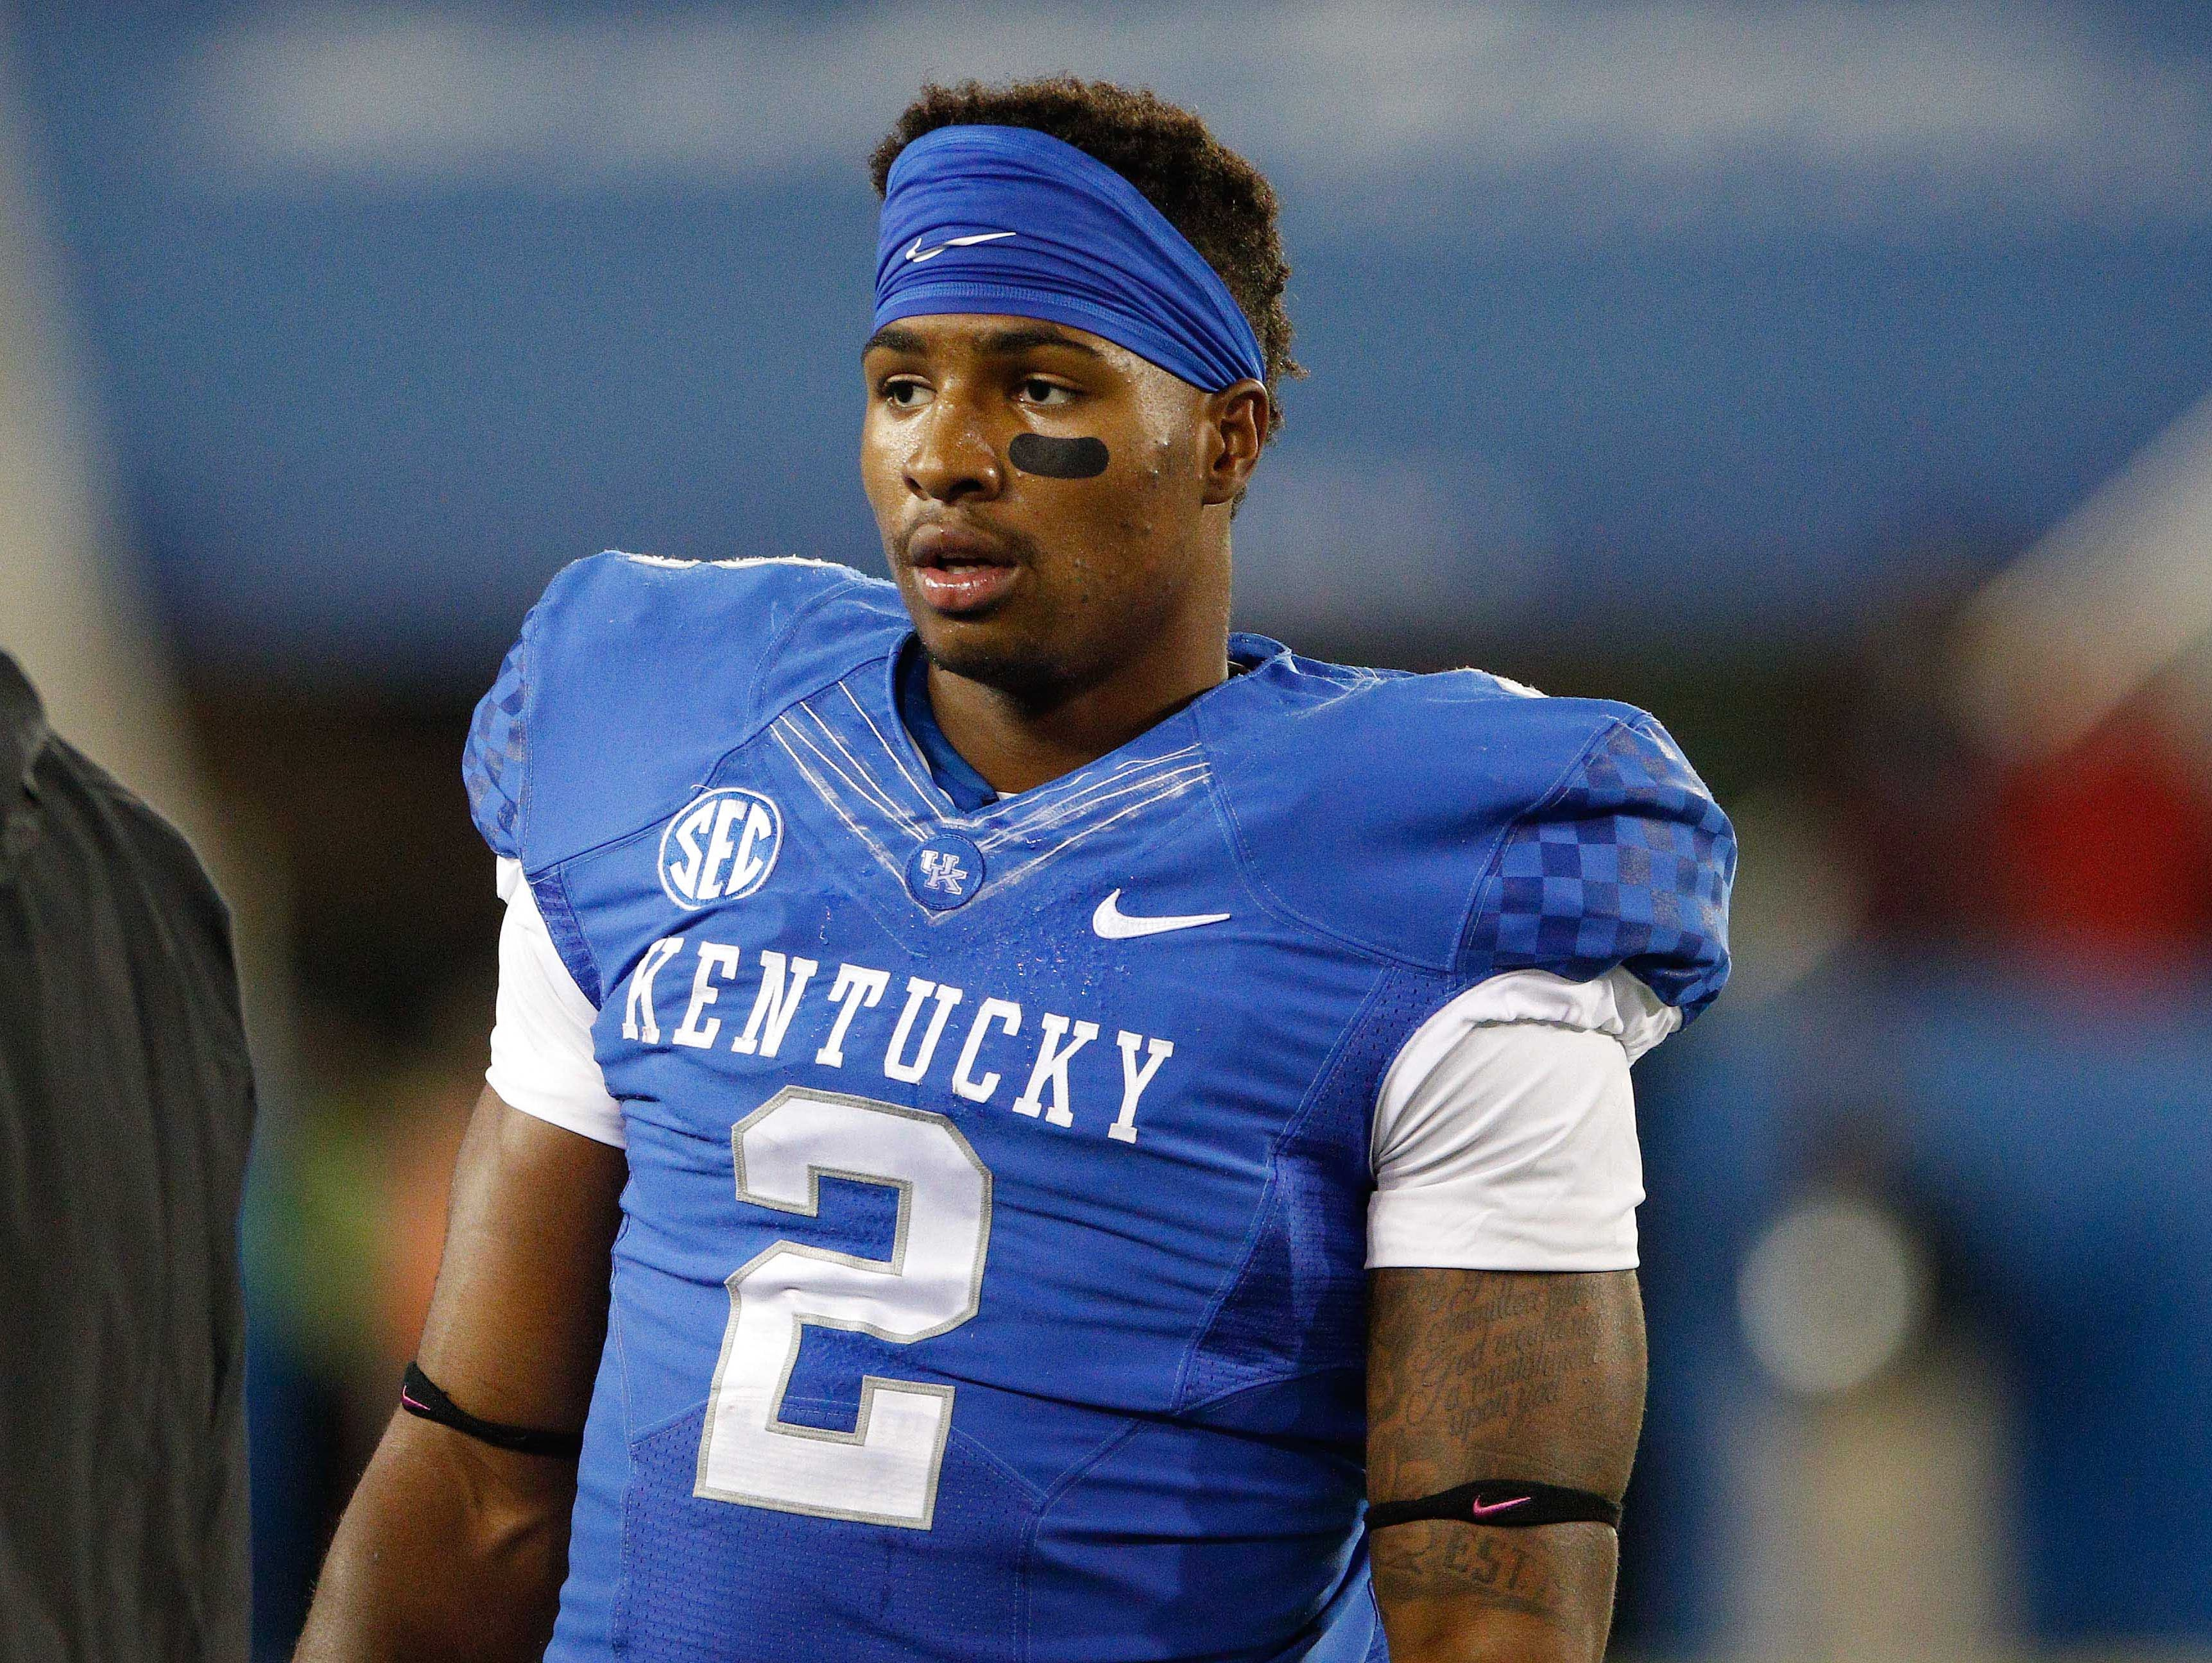 Oct 3, 2015; Lexington, KY, USA; Kentucky Wildcats wide receiver Dorian Baker (2) looks on during the game against the Eastern Kentucky Colonels at Commonwealth Stadium. Kentucky defeated Eastern Kentucky 34-27 in overtime.